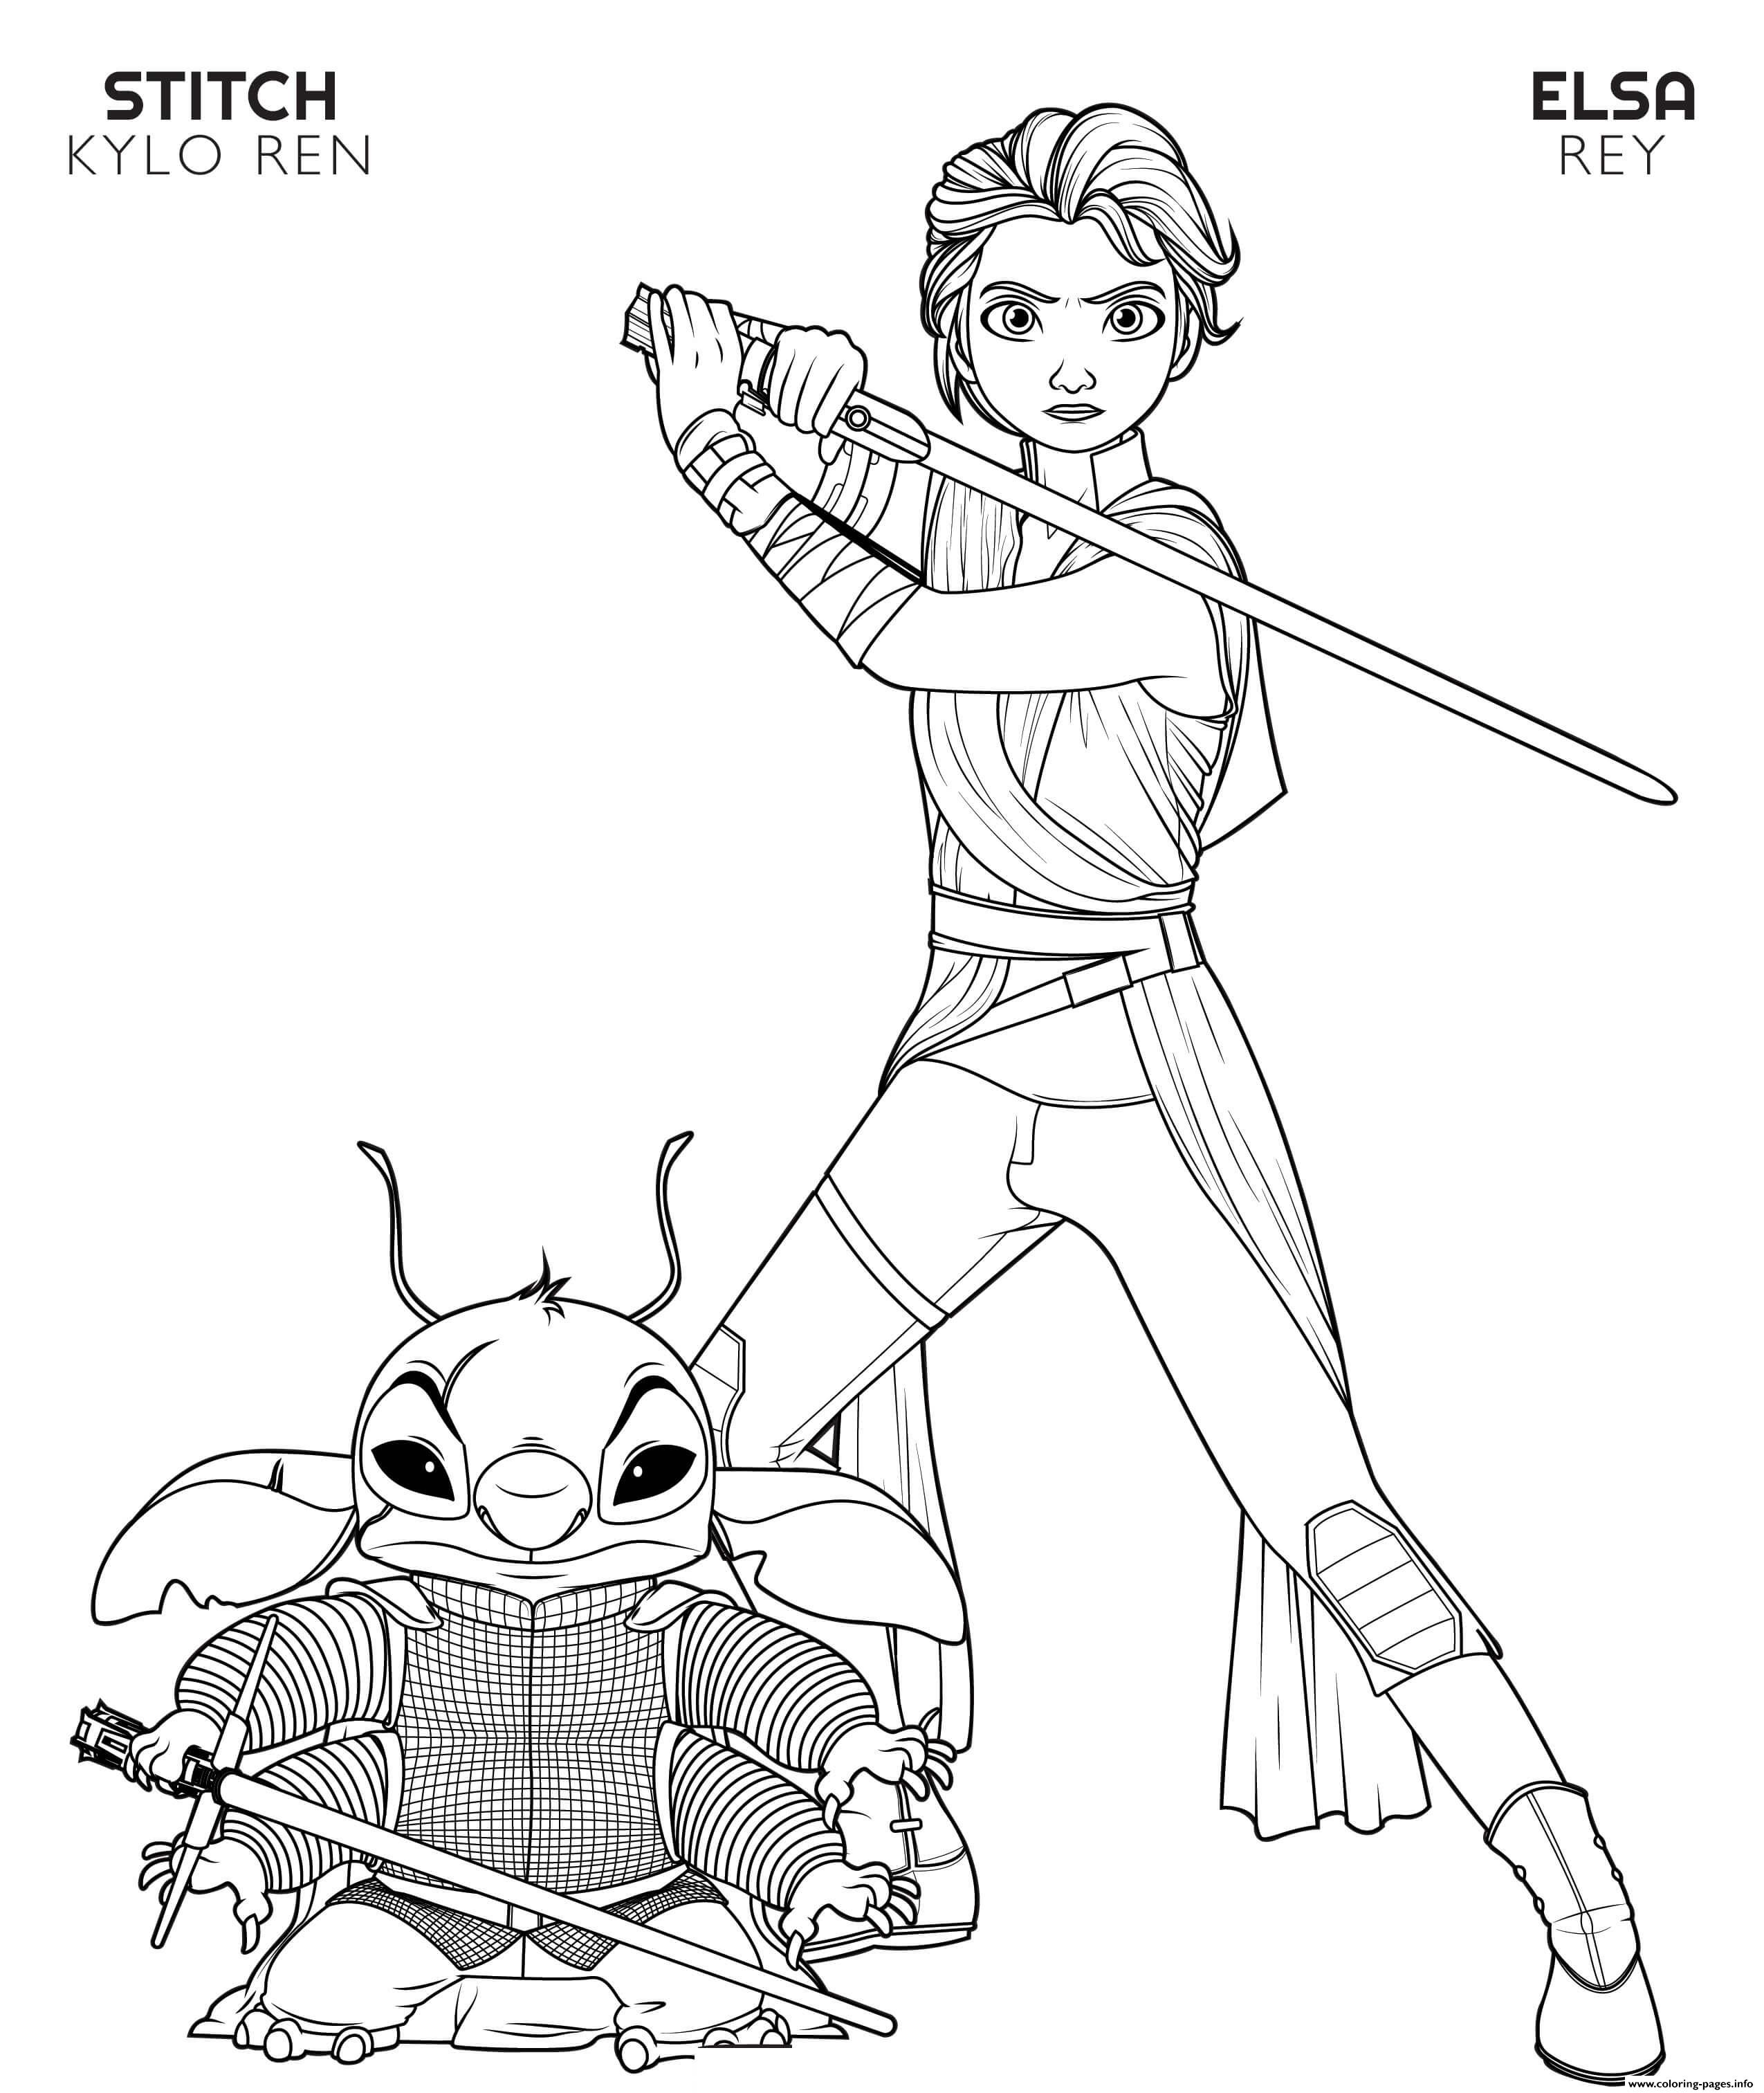 Rey Elsa And Kylo Ren Stitch Disney Star Wars Coloring